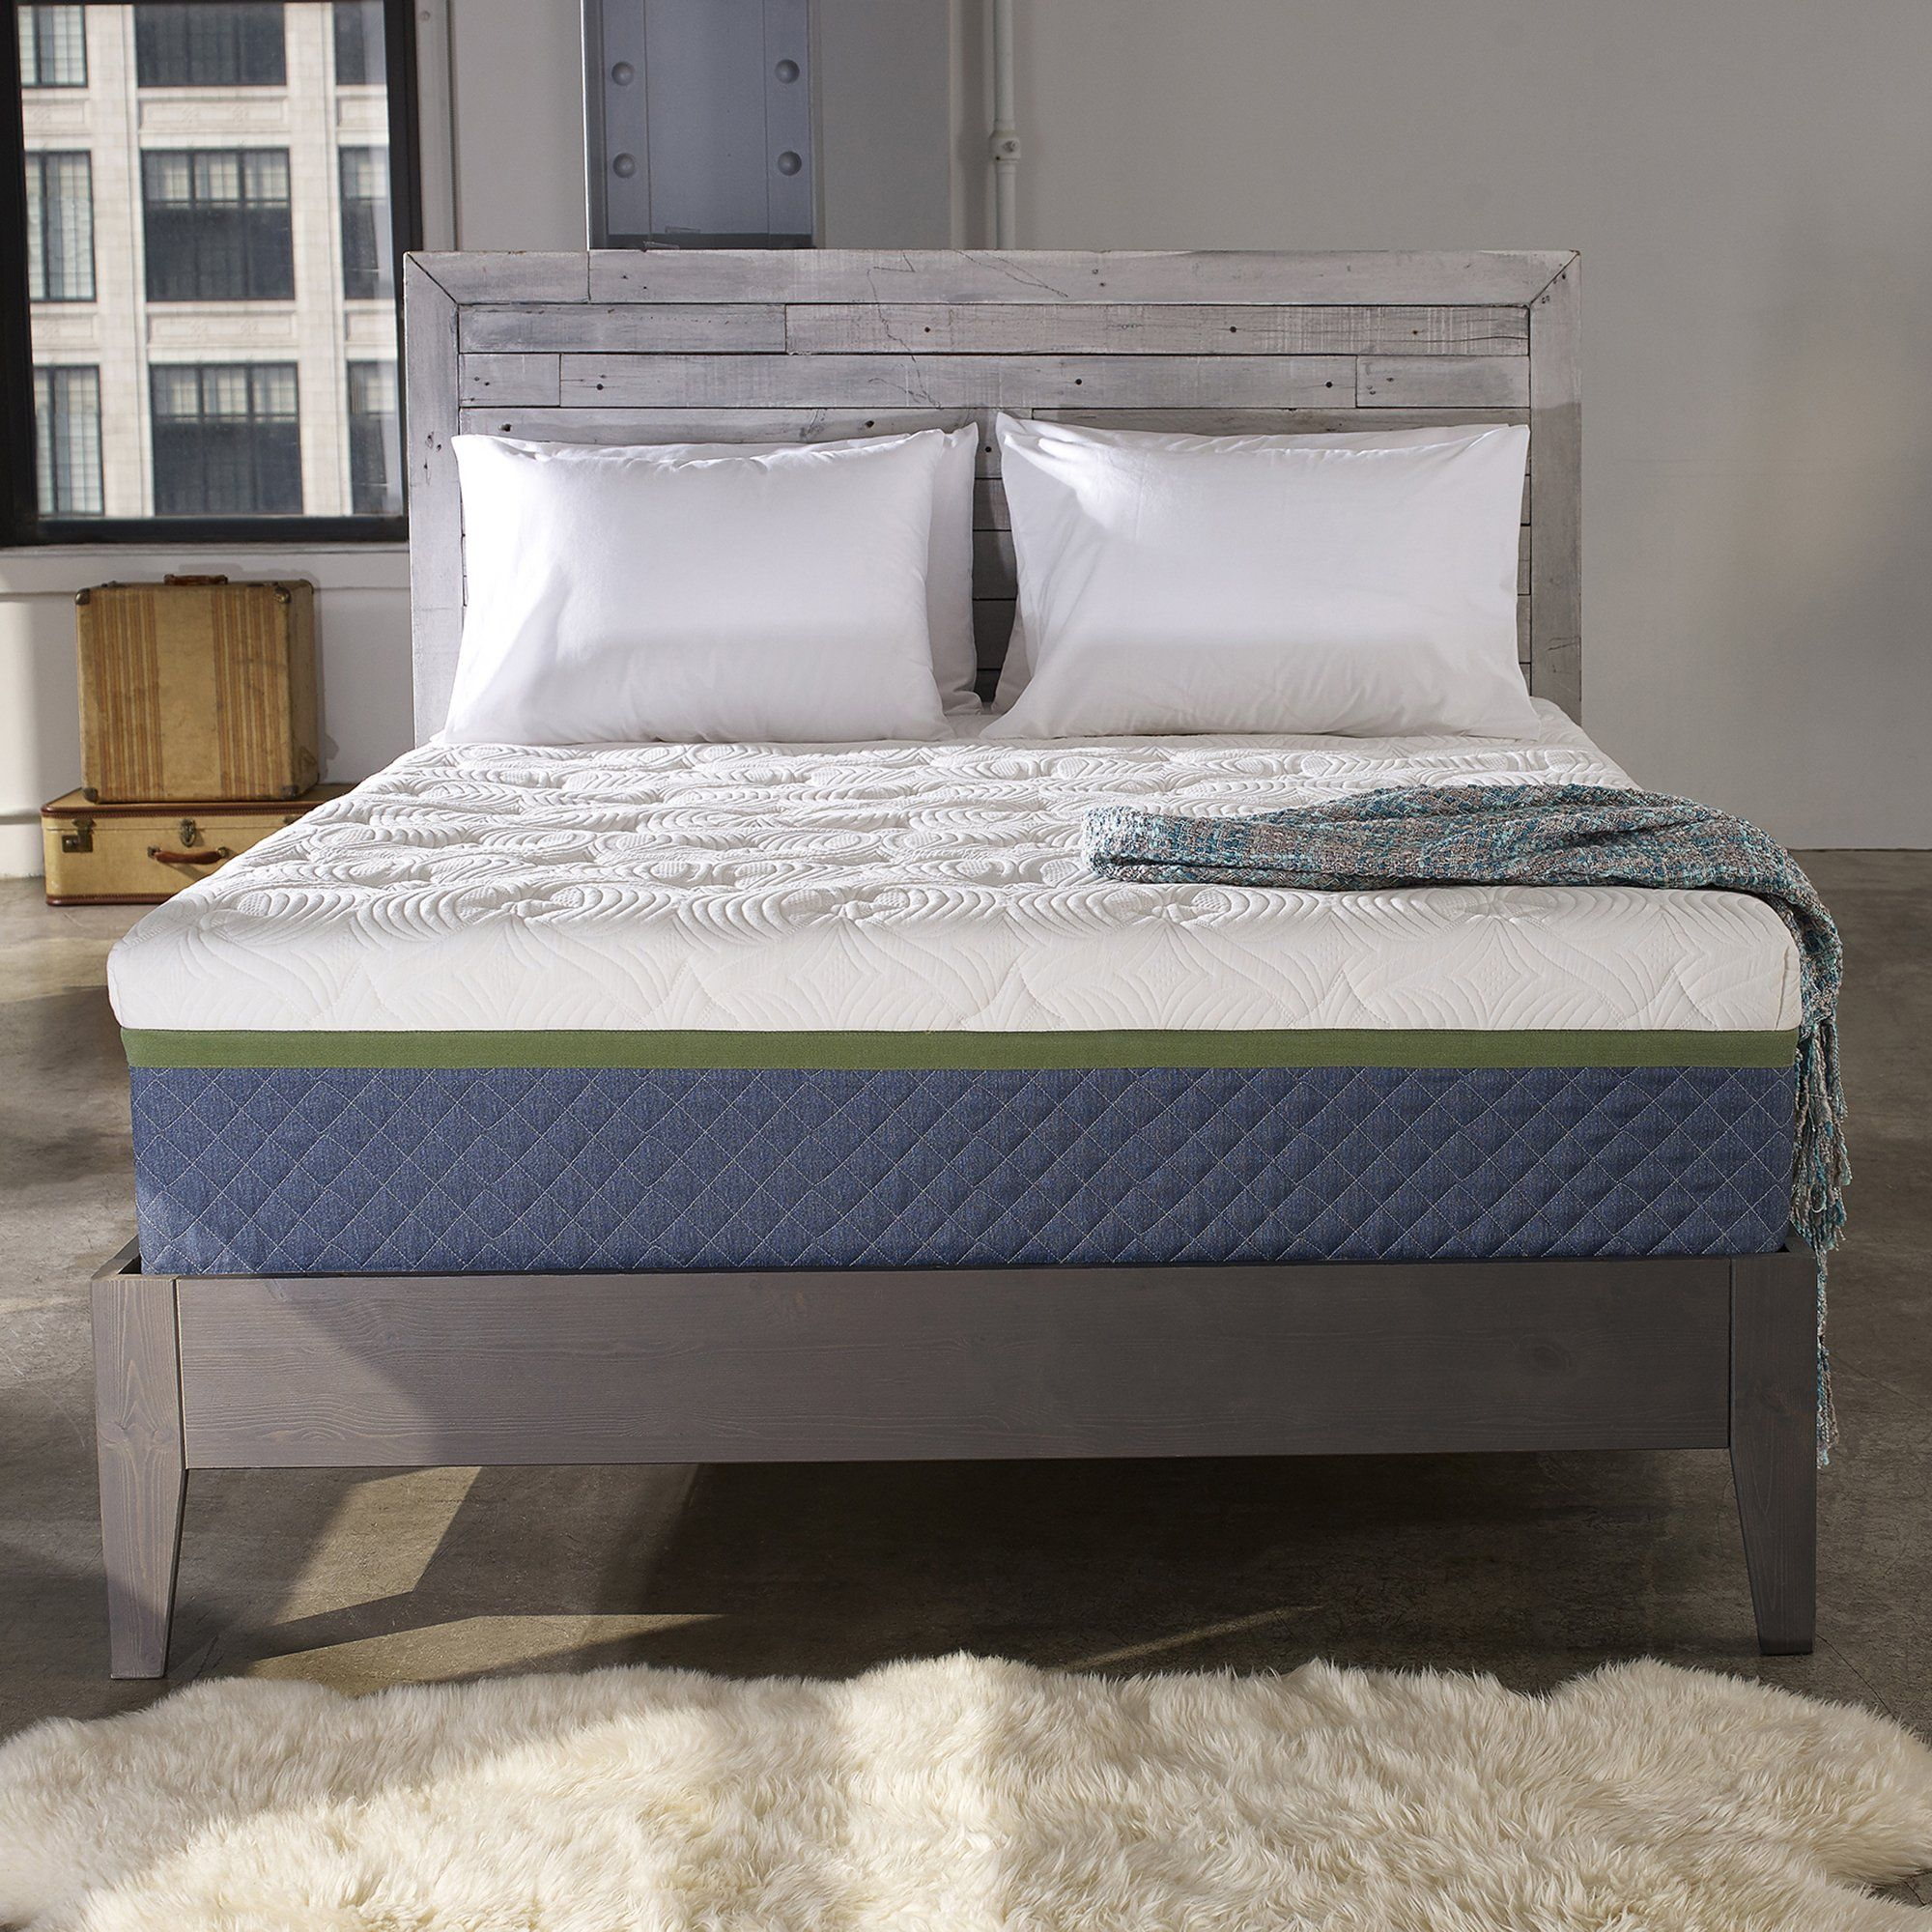 Sleep Innovations Taylor 12inch Cooling Gel Memory Foam Mattress Bed In A Box Made In The Usa 10year Warr In 2020 Box Bed Bed Mattress Memory Foam Memory Foam Mattress